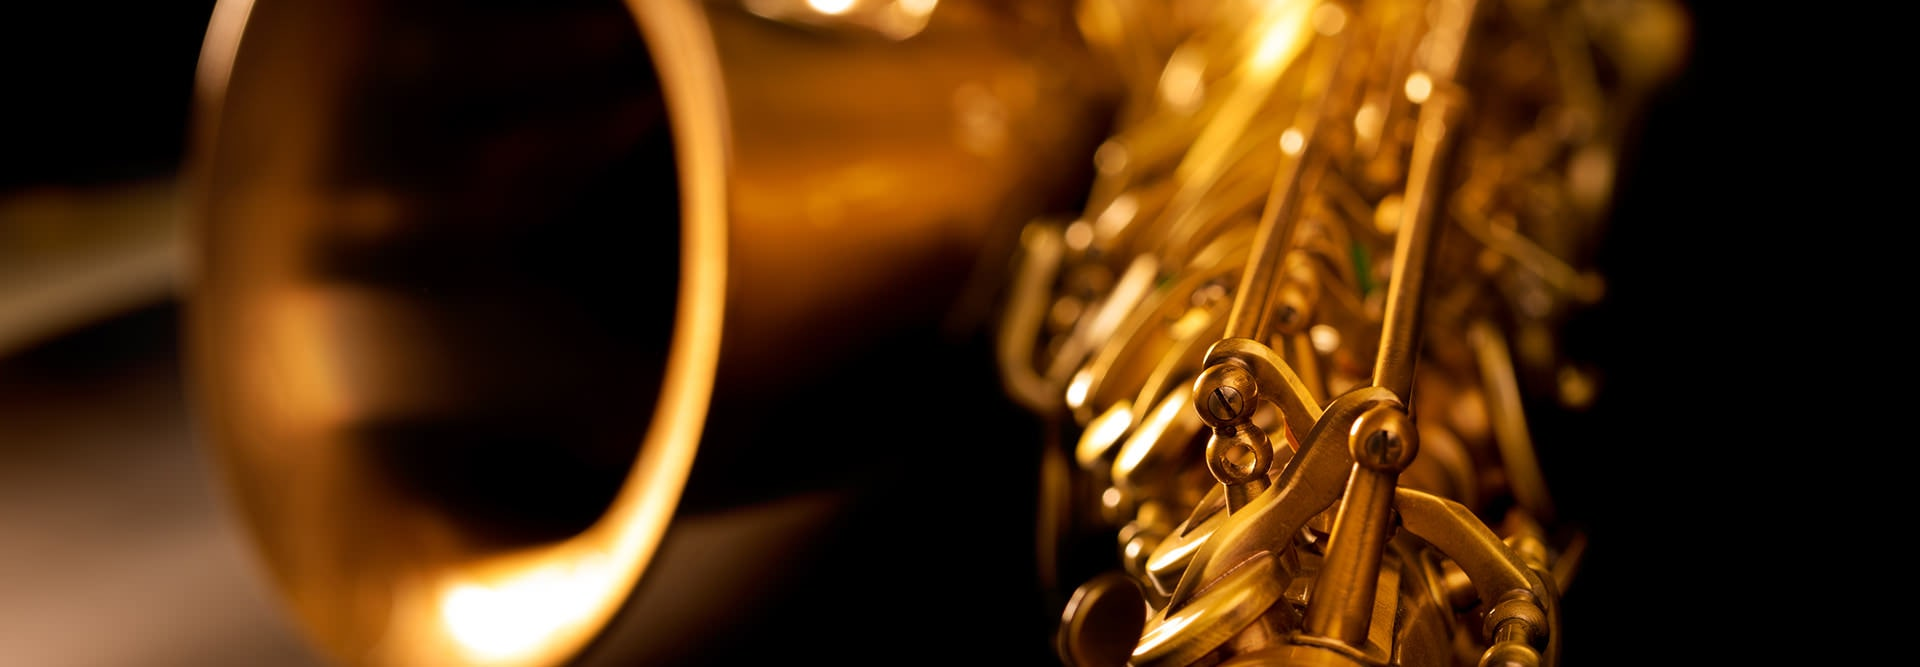 learn to play saxophone, how to play saxophone, saxophone lessons